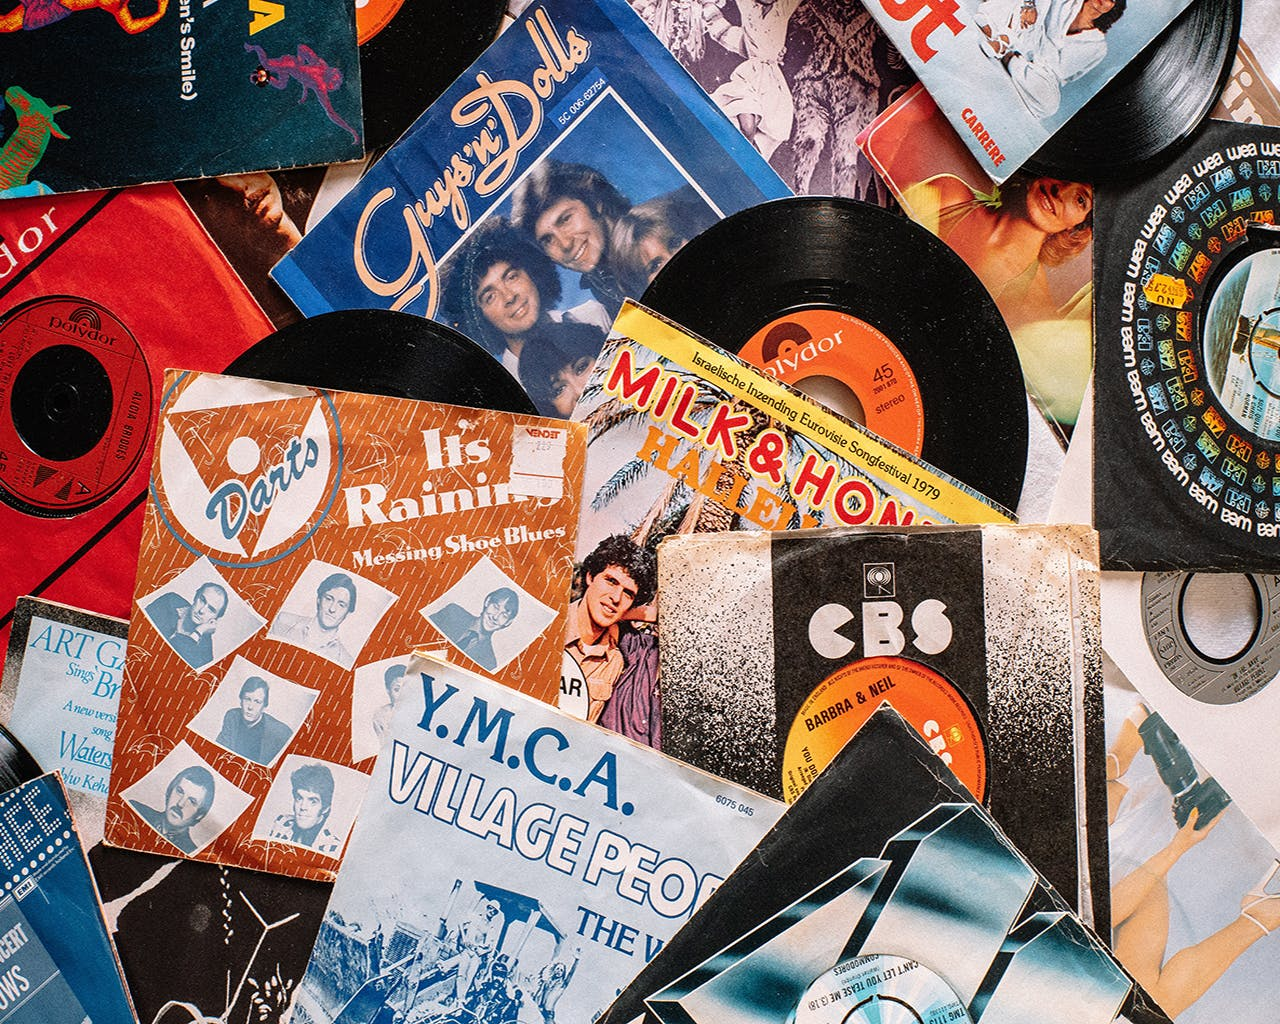 3 Reasons You Should Ditch The MP3 And Listen To Vinyl Records Instead